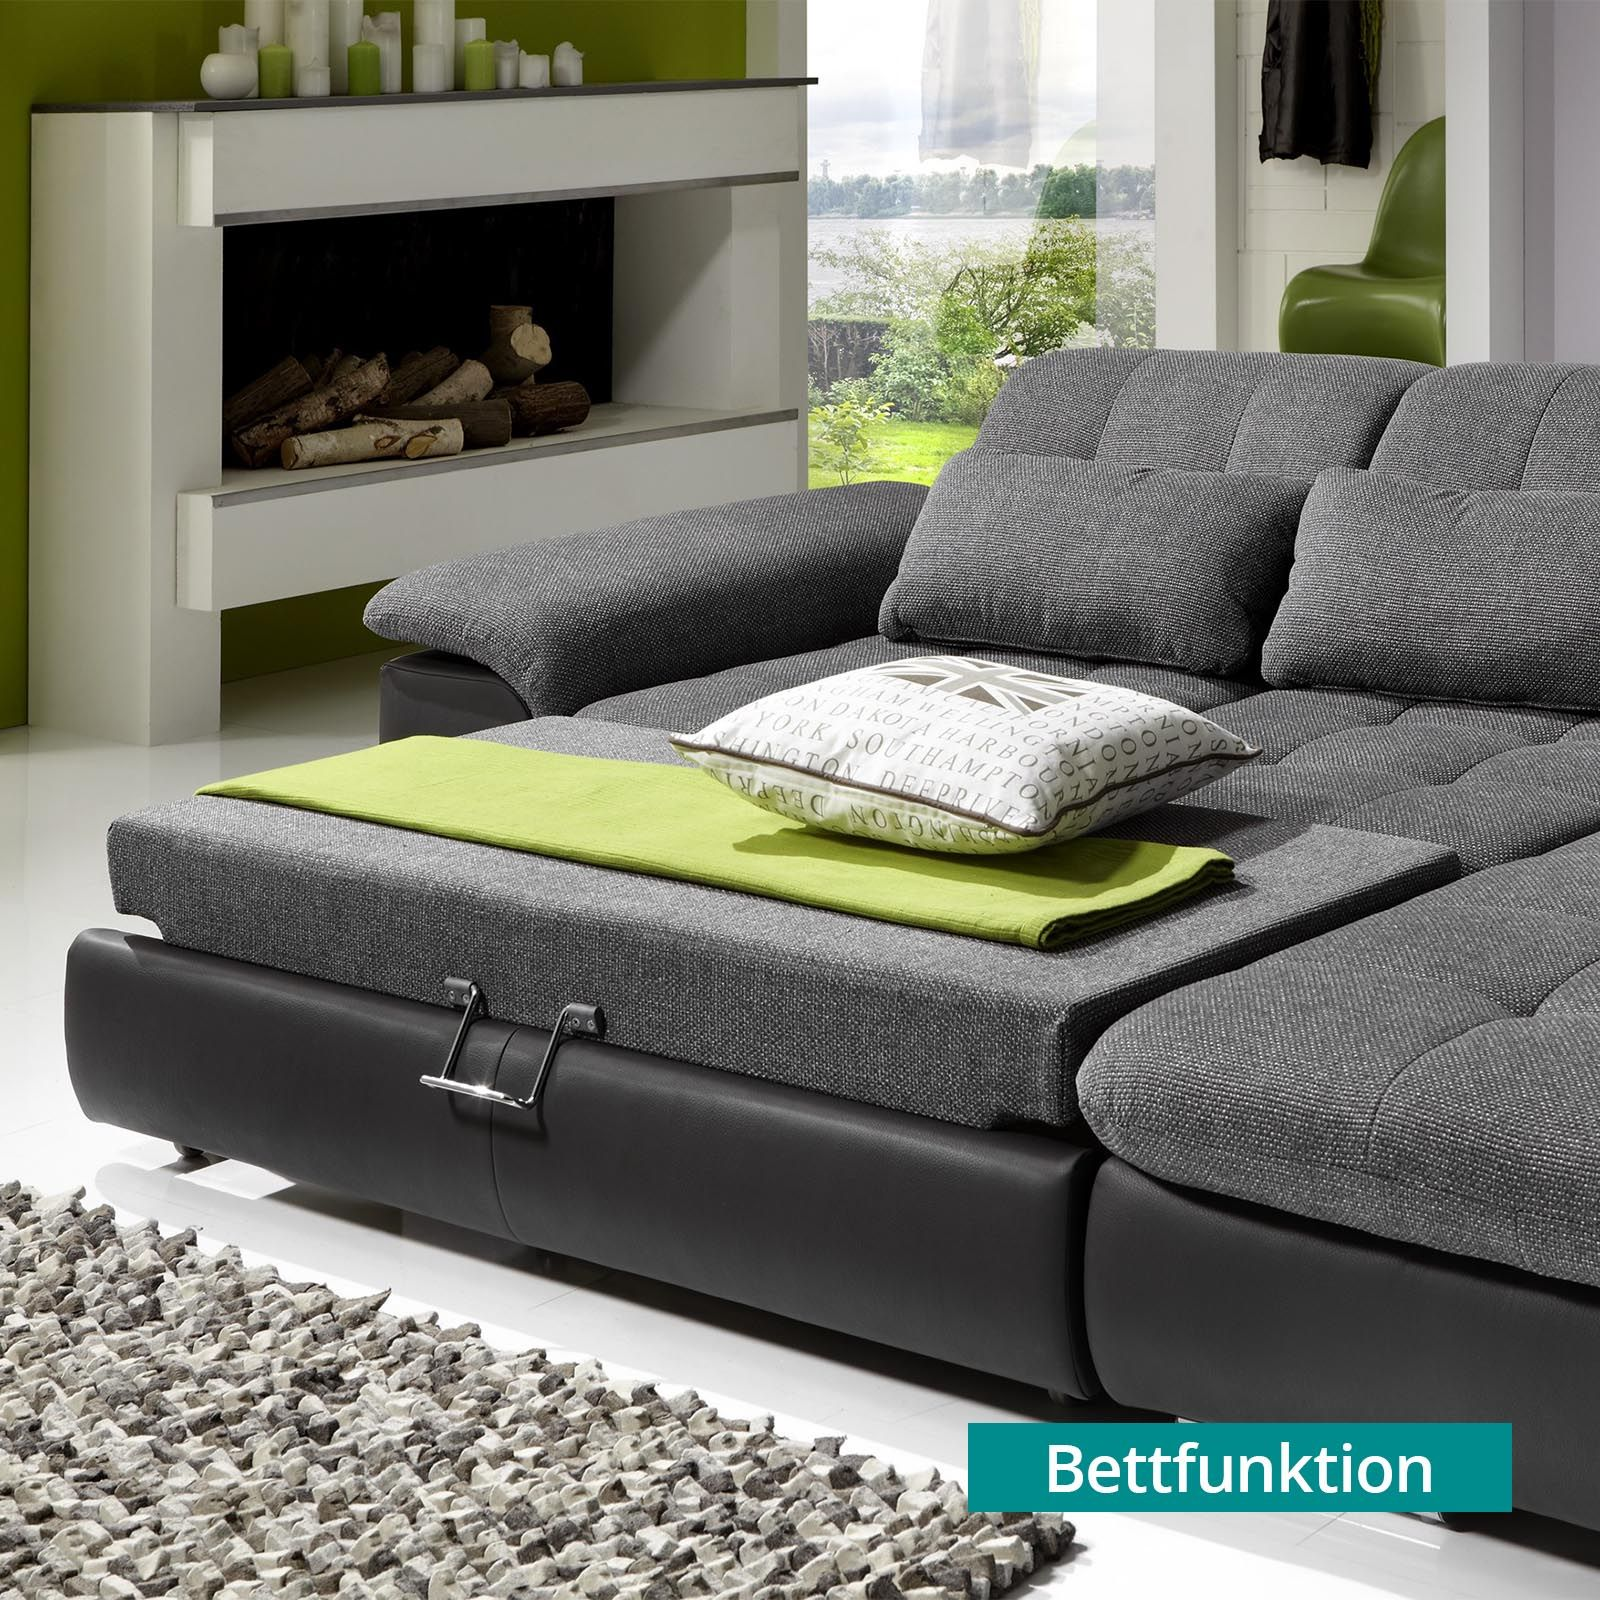 Megapol Sofa Isola Can A Leather Be Reupholstered Wohnlandschaft Individuell Anthrazit Silver Modern